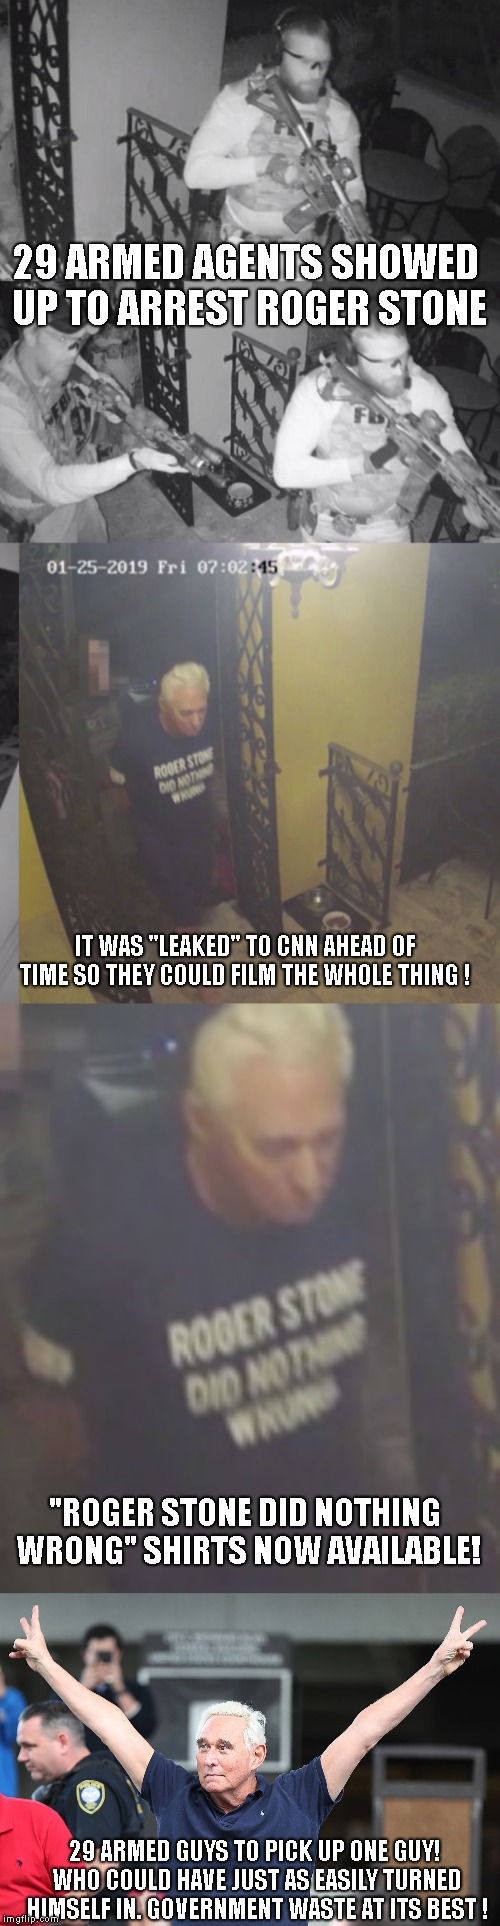 """Excessive Use Of Force"" It's Time For Someone to Reign In These Government Agencies That Have No Oversight Over Wasting MONEY ! 